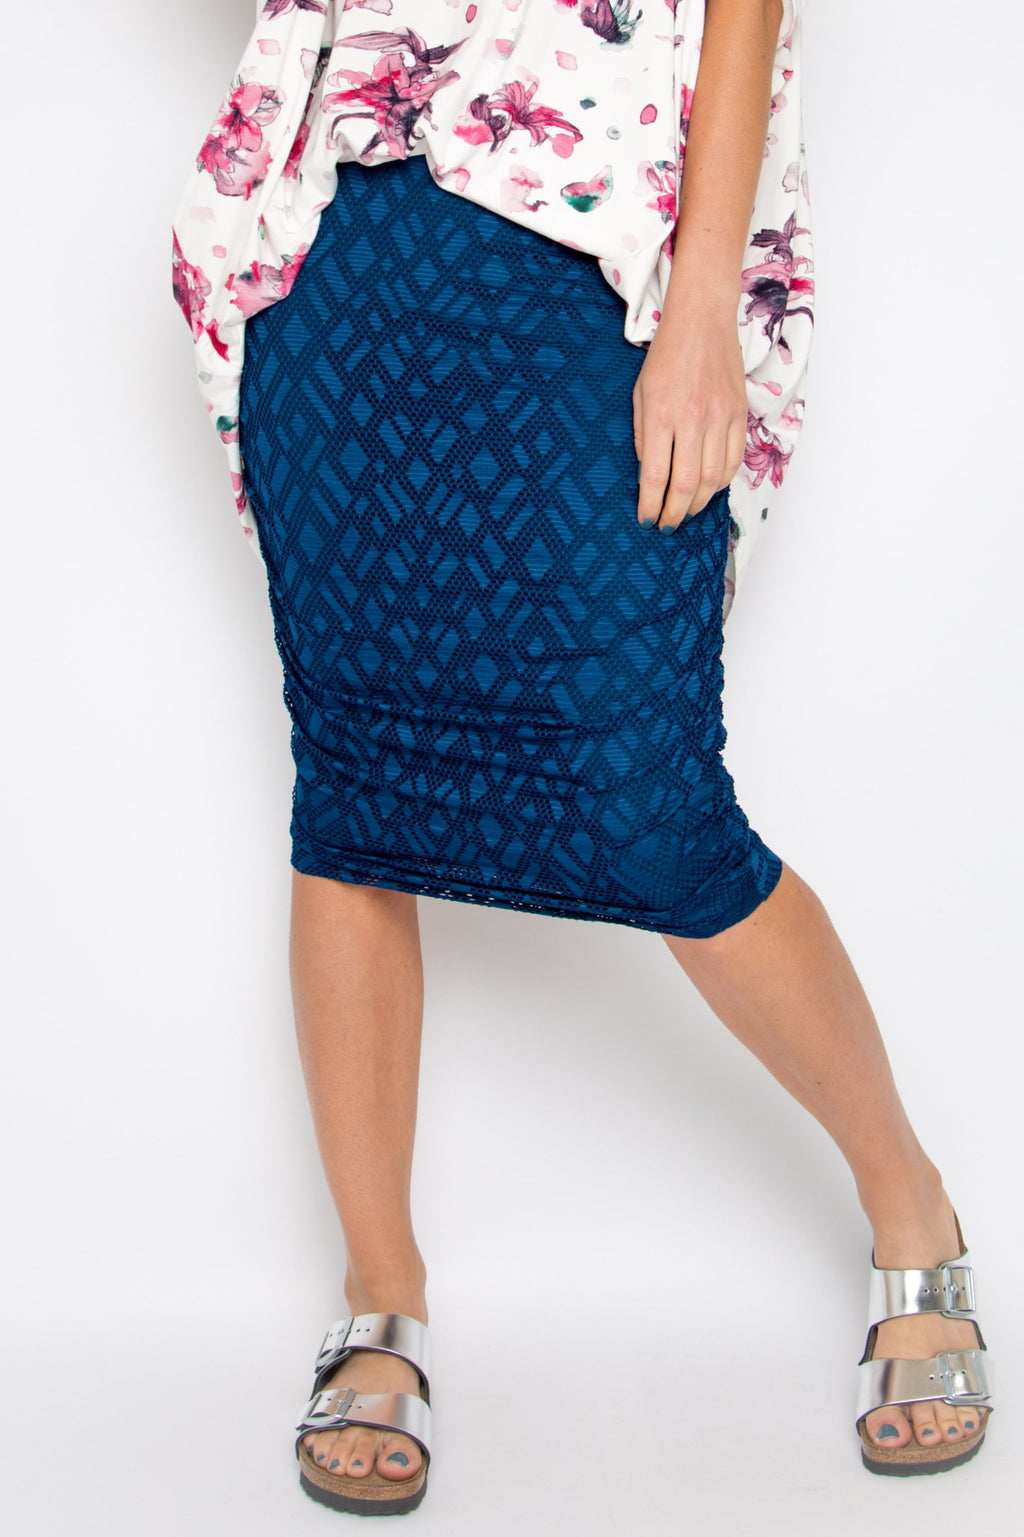 Mesh Ruche Skirt in Teal Geo